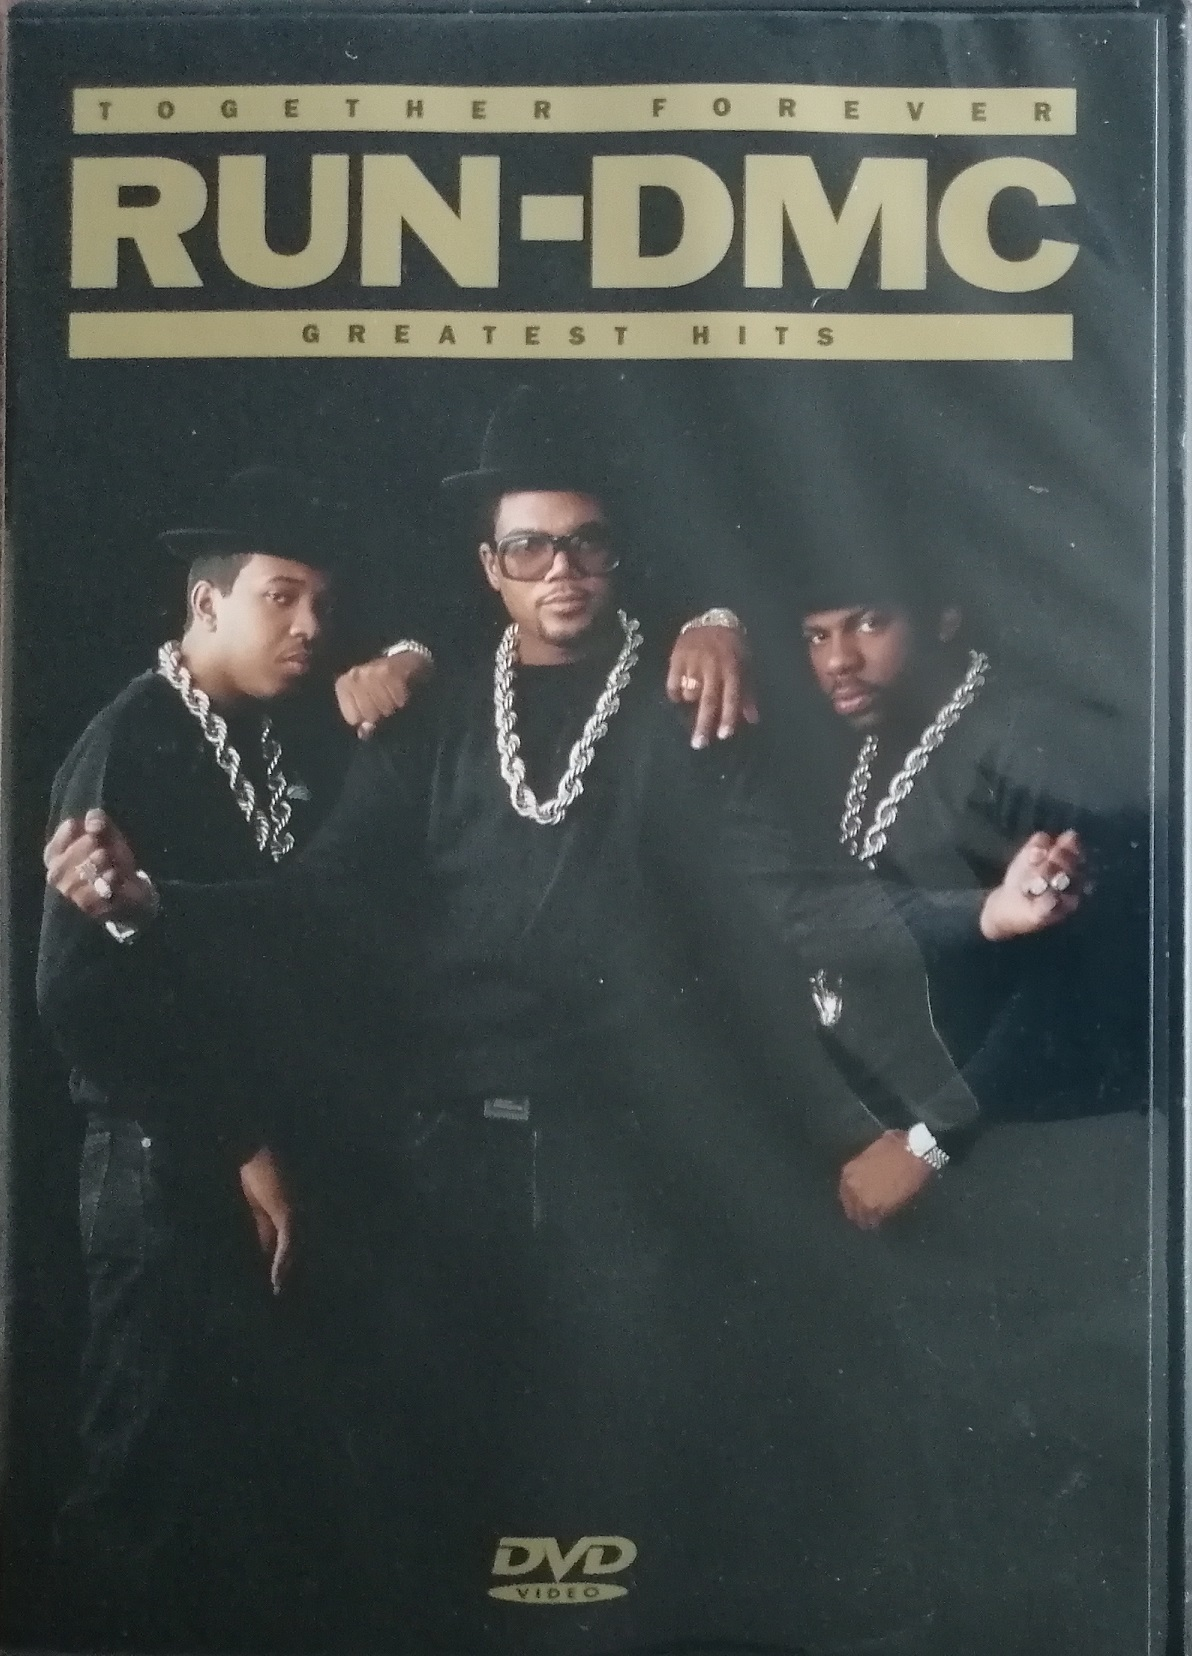 RUN-DMC  Together Forever -  Greatest Hits - DVD plast